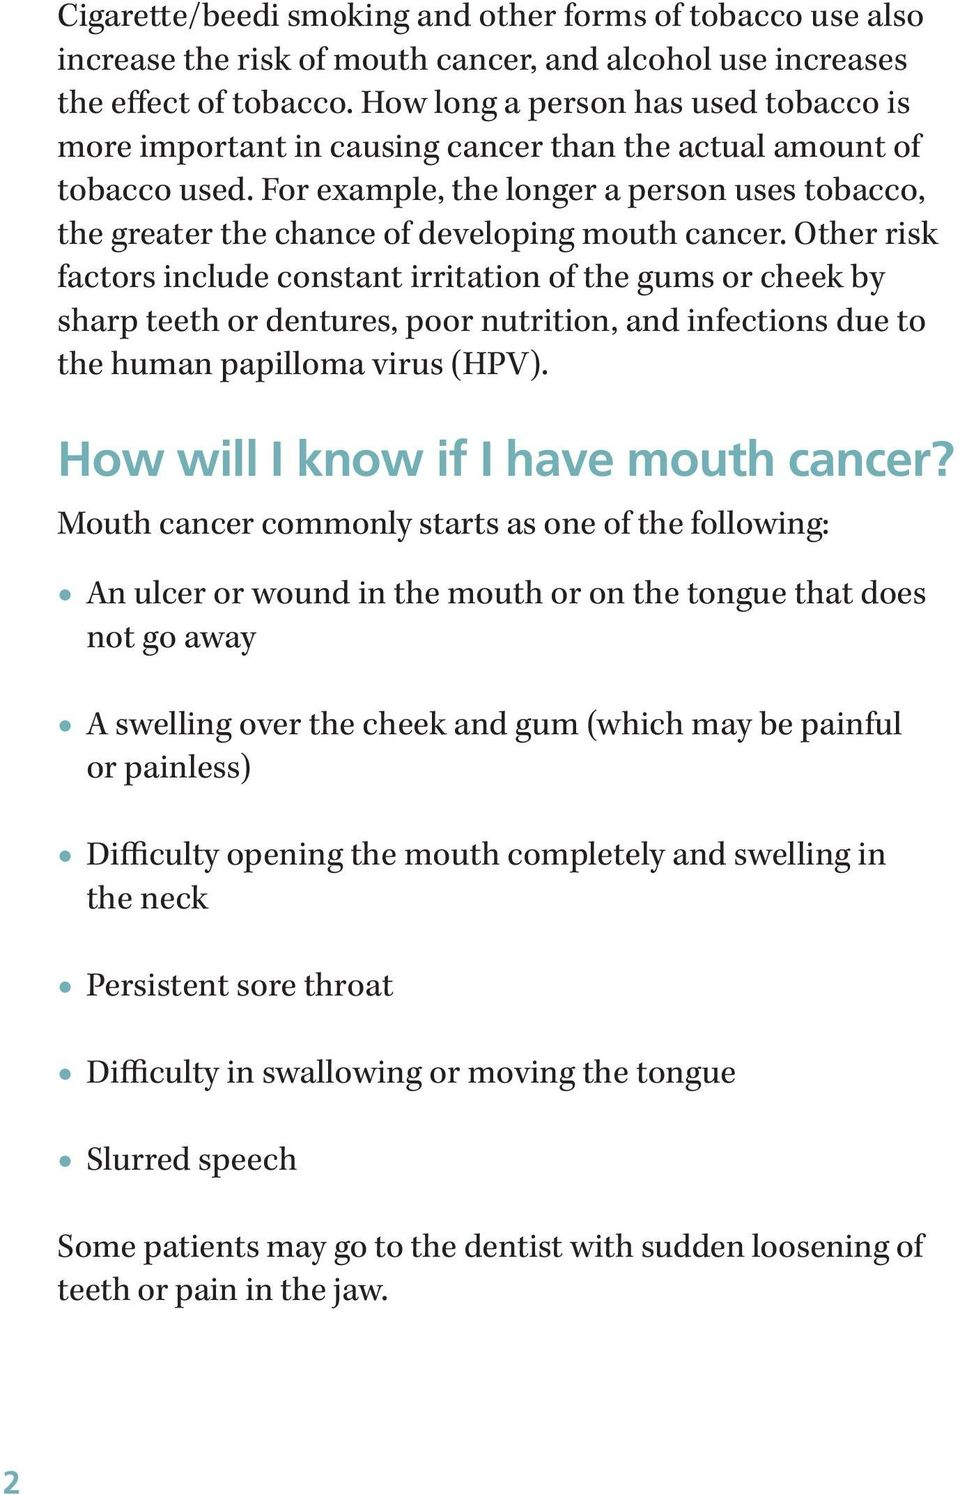 For example, the longer a person uses tobacco, the greater the chance of developing mouth cancer.